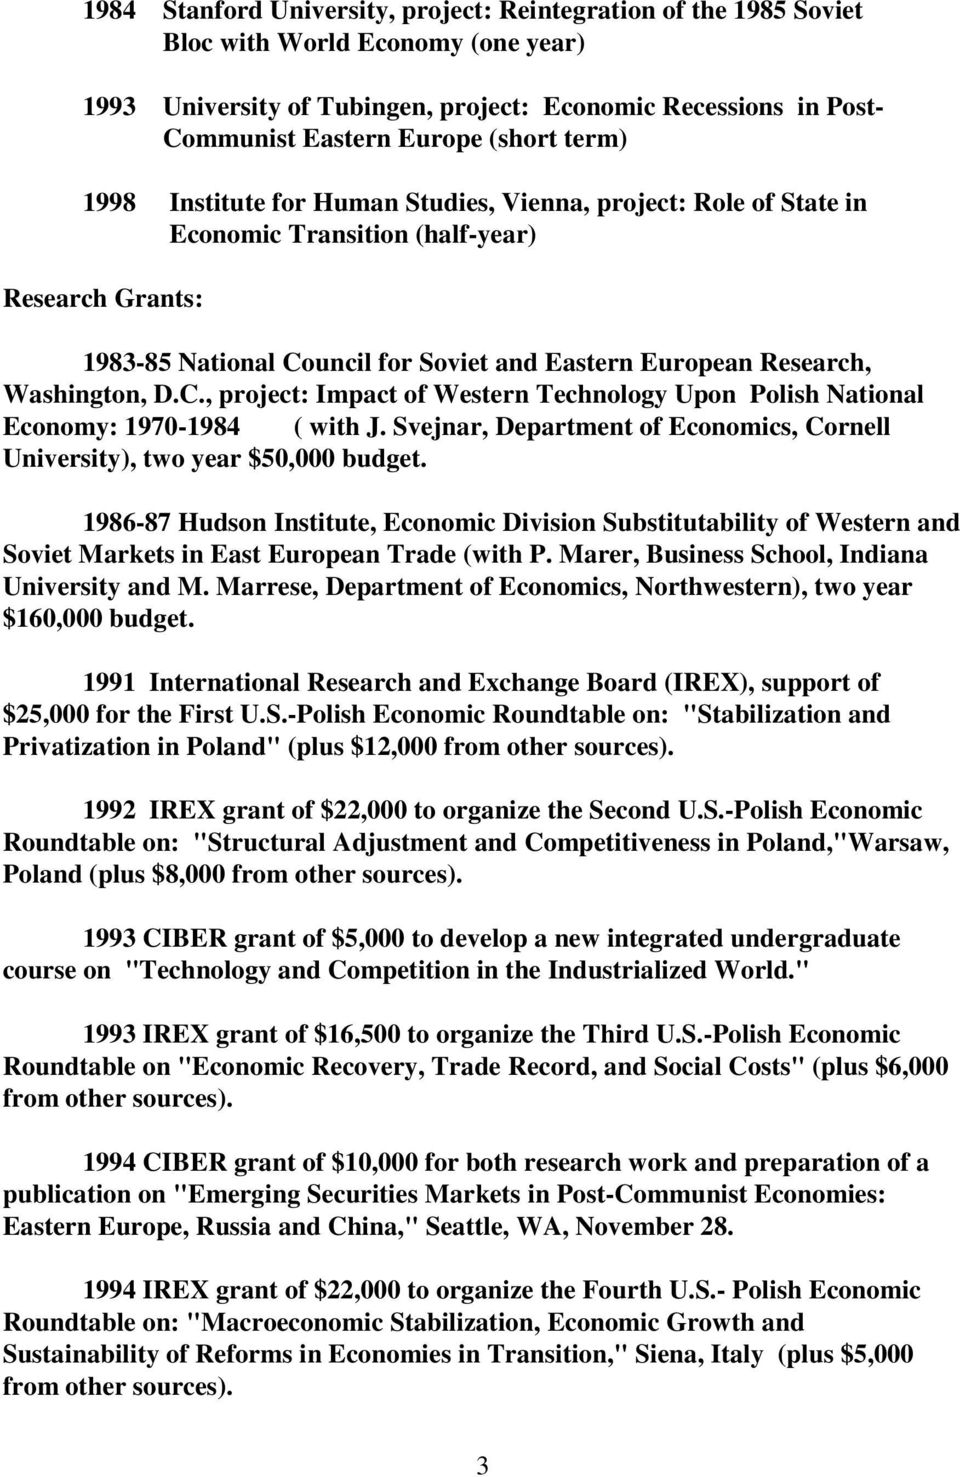 Washington, D.C., project: Impact of Western Technology Upon Polish National Economy: 1970-1984 ( with J. Svejnar, Department of Economics, Cornell University), two year $50,000 budget.